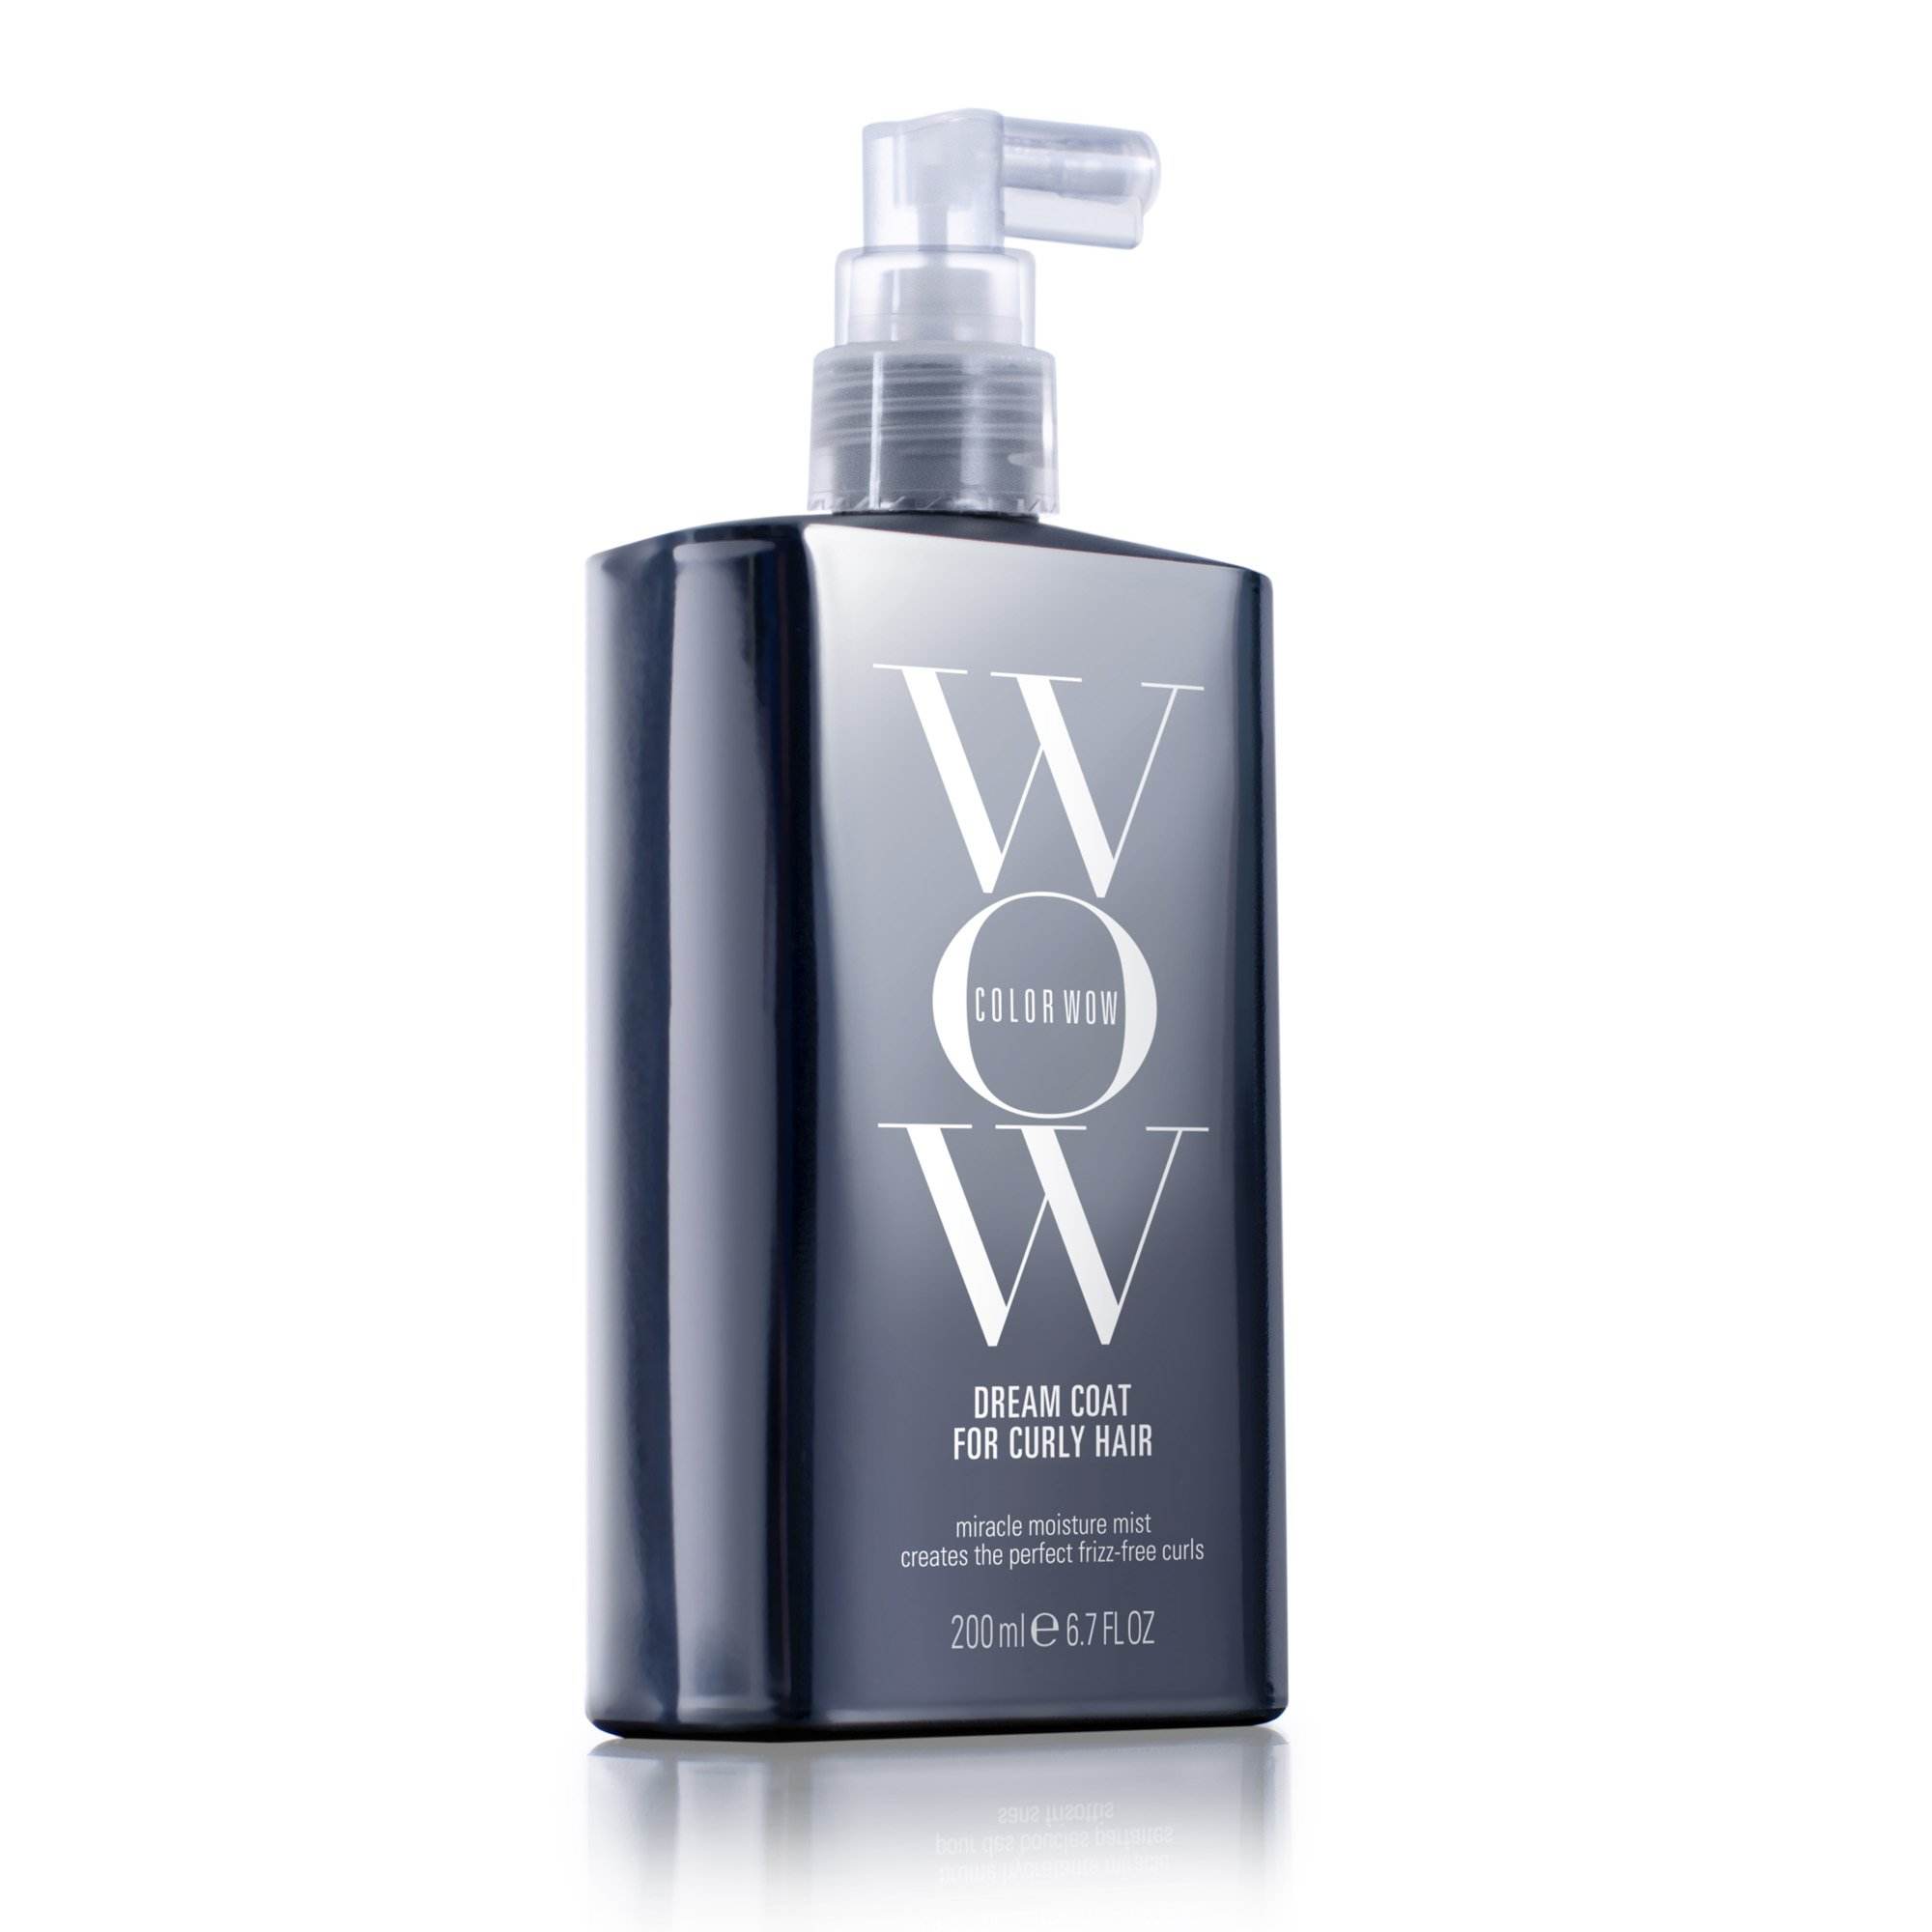 COLOR WOW Dream Coat for Curly Hair, Miracle moisture mist for perfect frizz-free curls, 6.7 fl. oz. by COLOR WOW (Image #1)